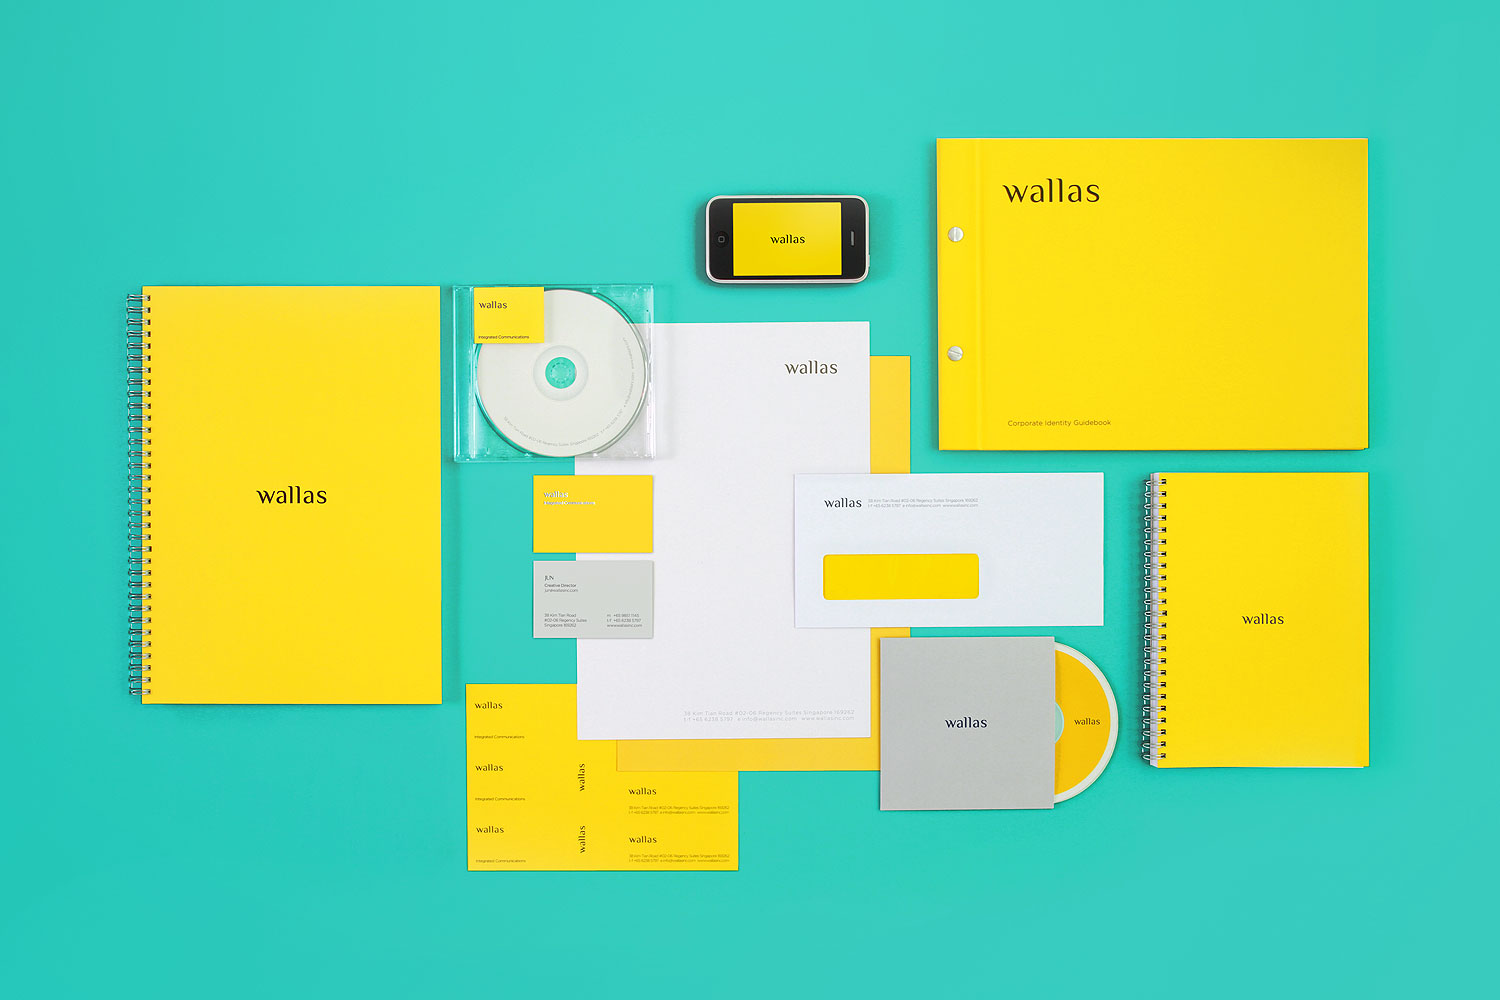 Branding identity design for Wallas Inc, an integrated agency in SG - Identity kit design by Singapore based brand strategy and creative design consultancy, BÜRO UFHO.